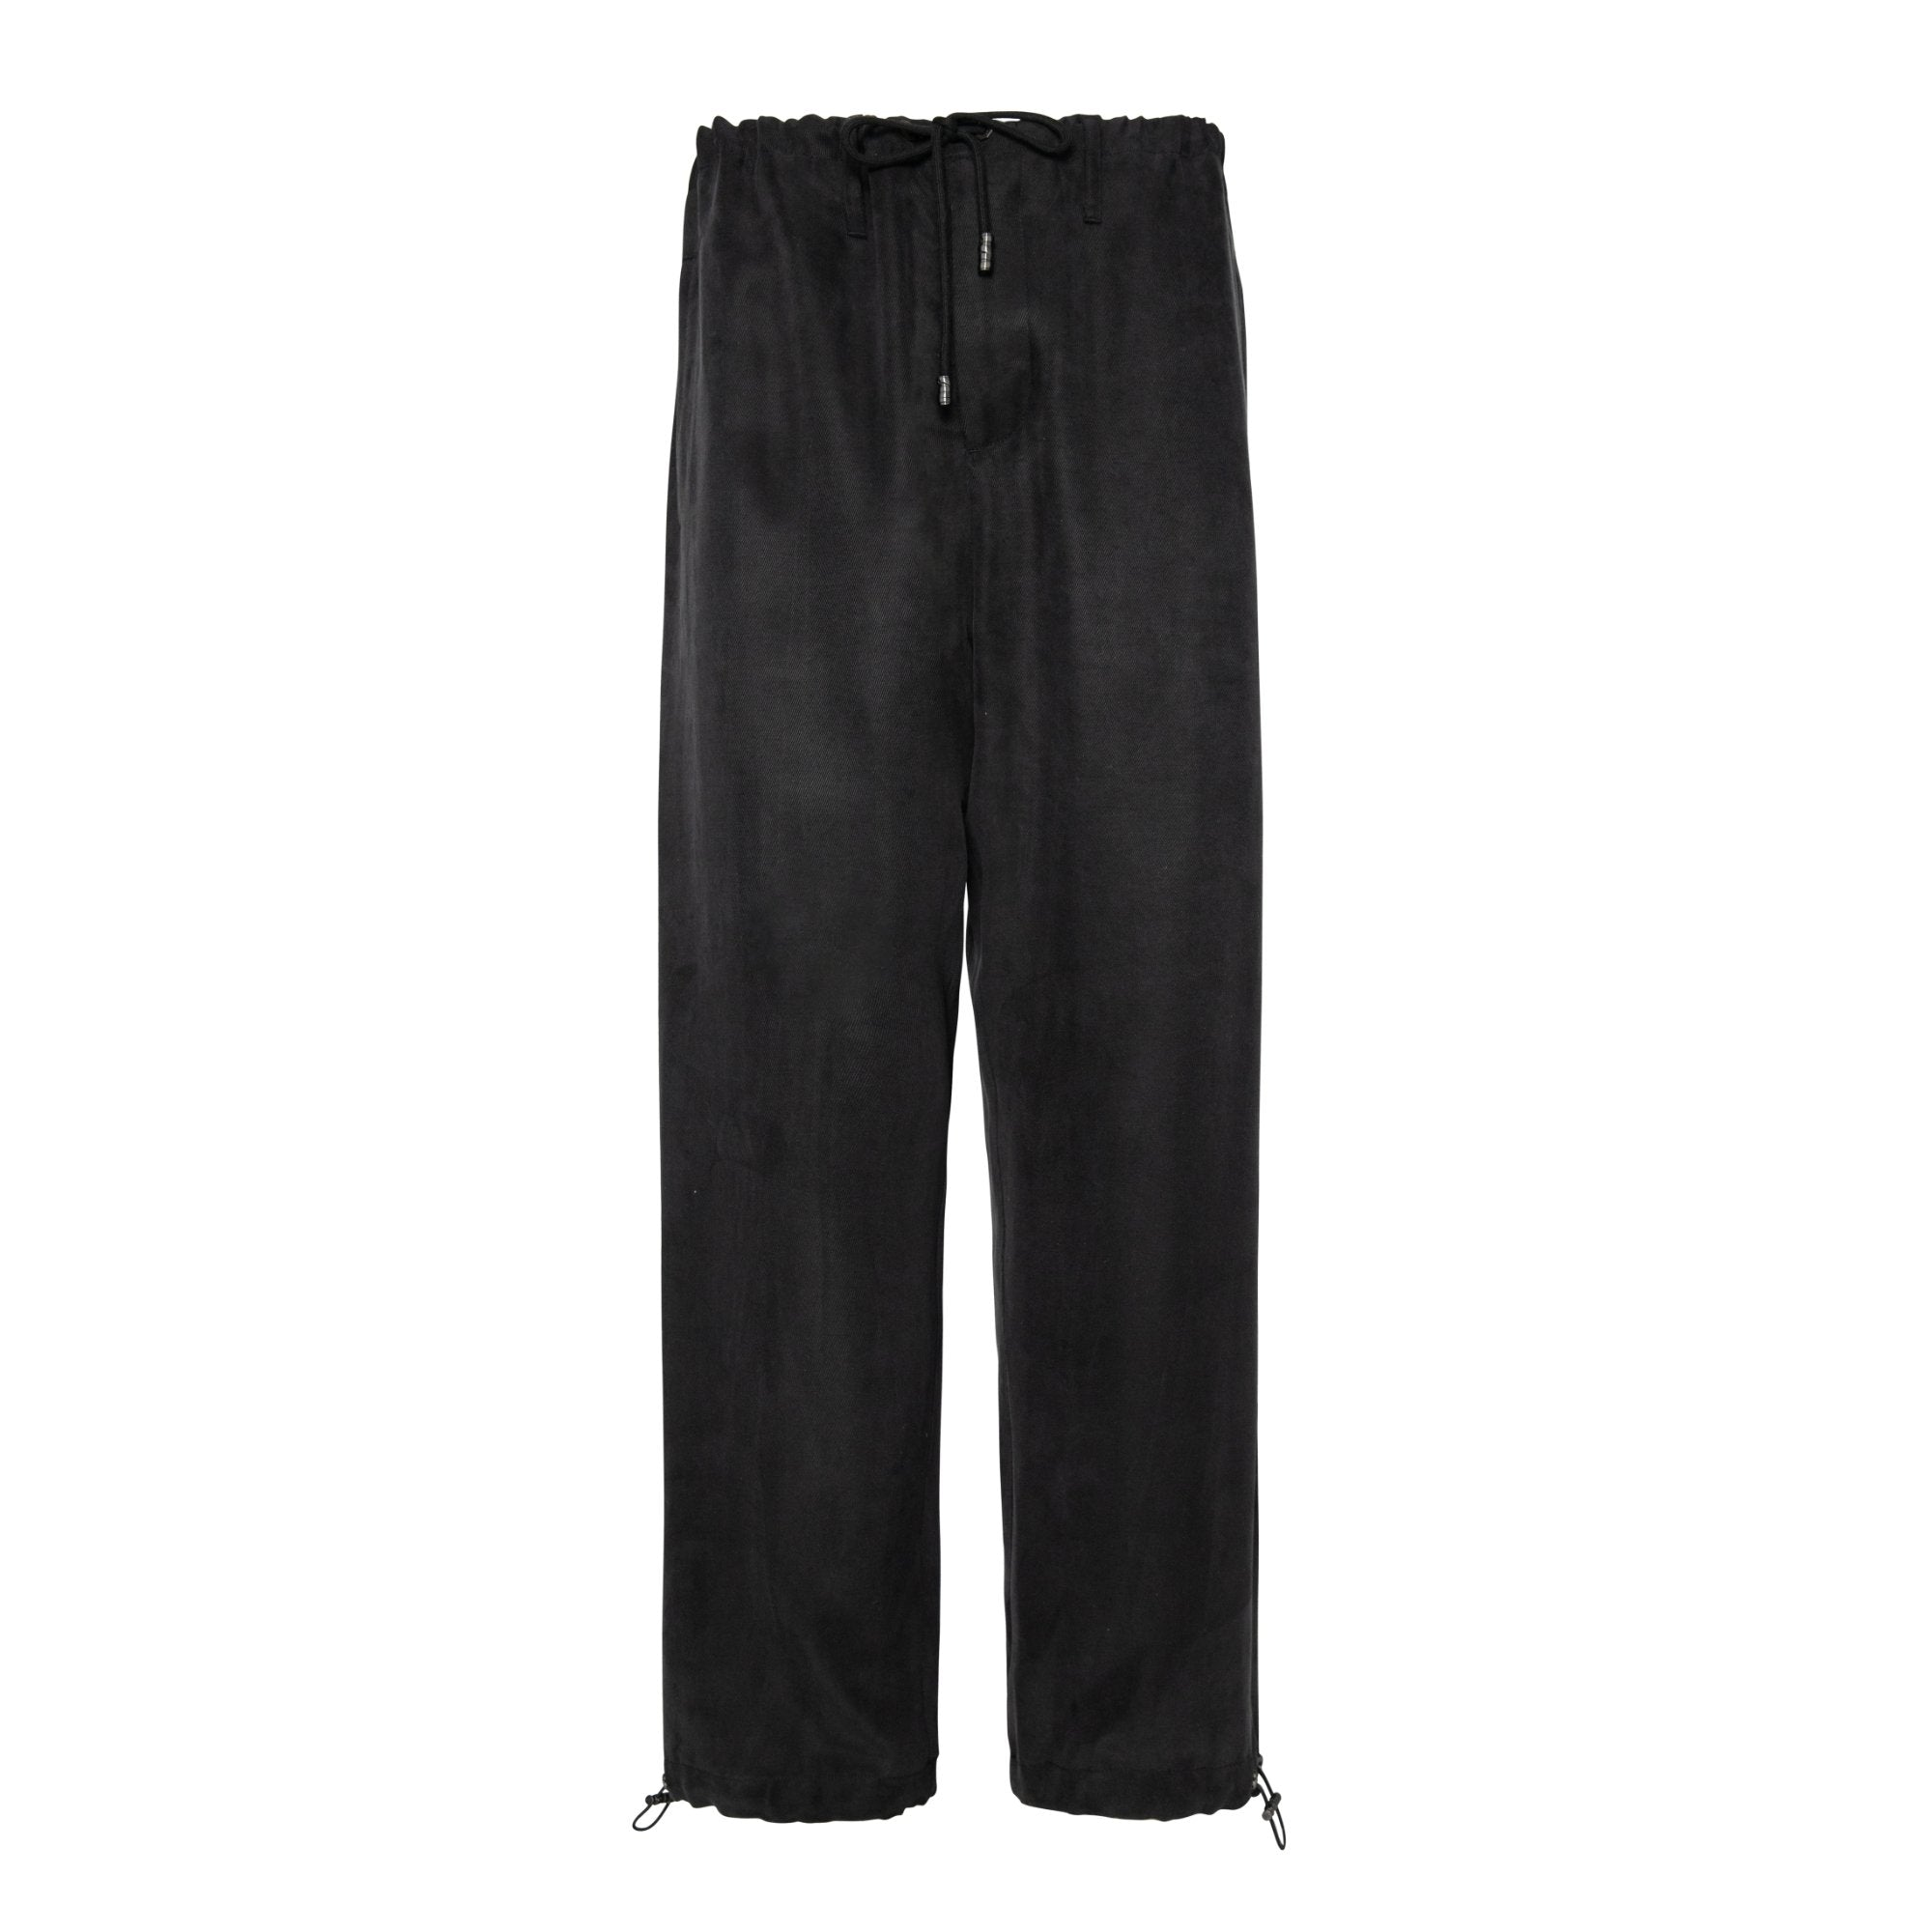 GALLIANO LANDOR Cupro Silhouette Drawstring Trousers | MADA IN CHINA